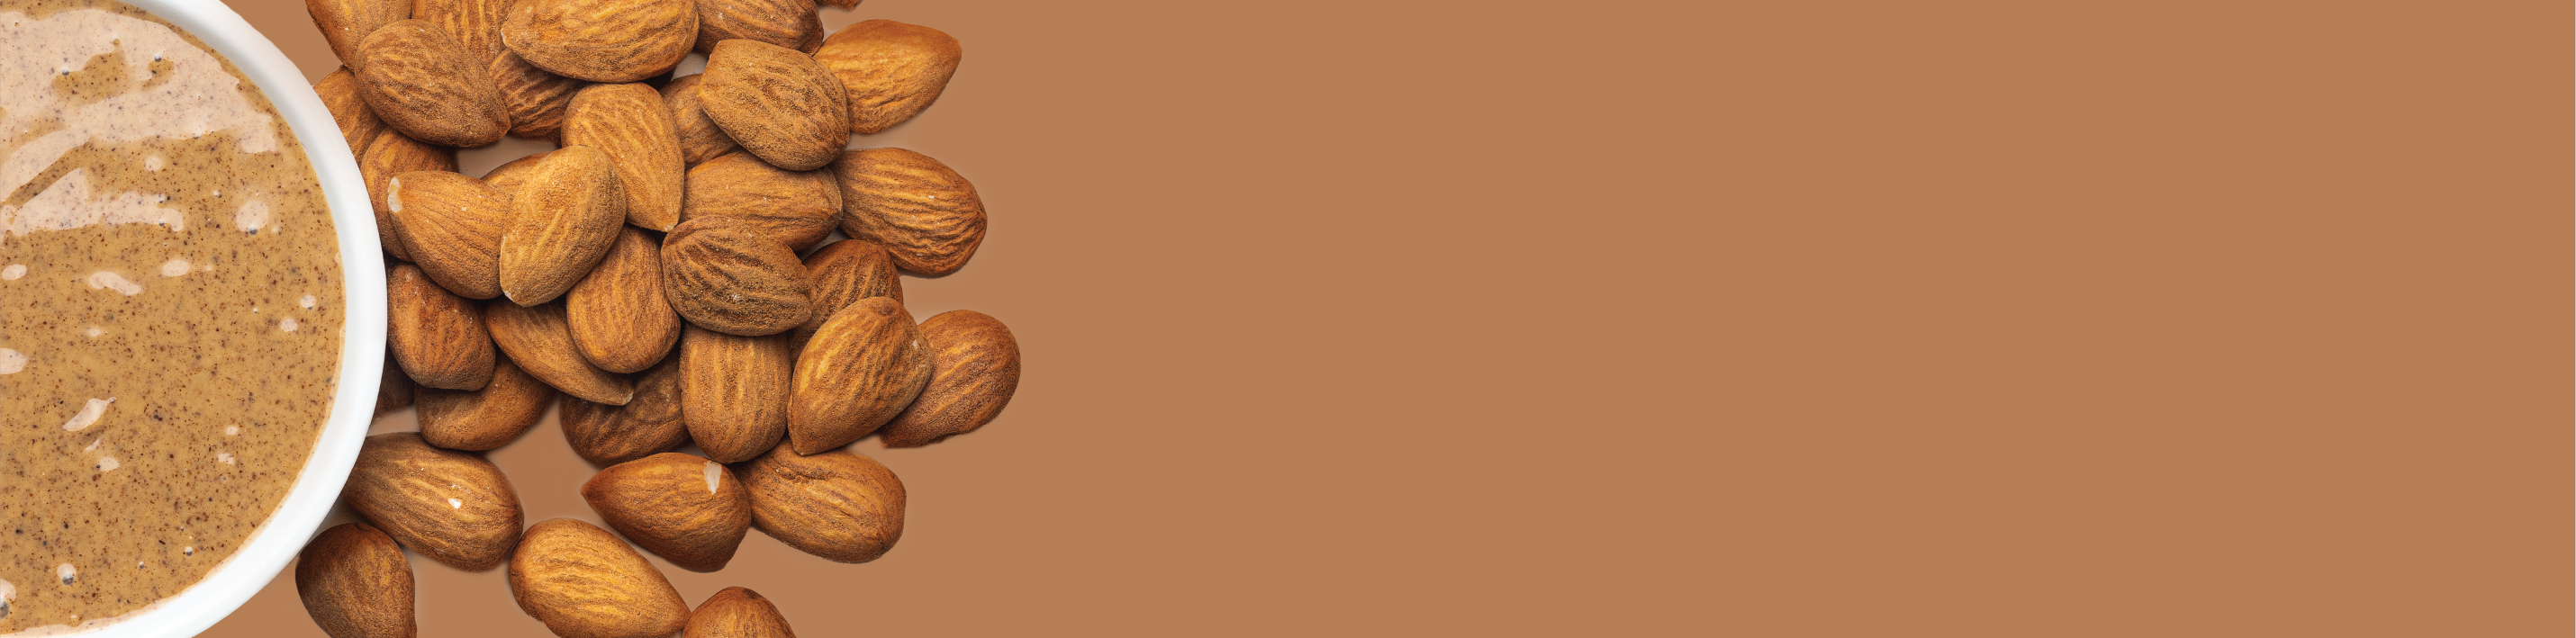 almonds next to almond butter in a bowl